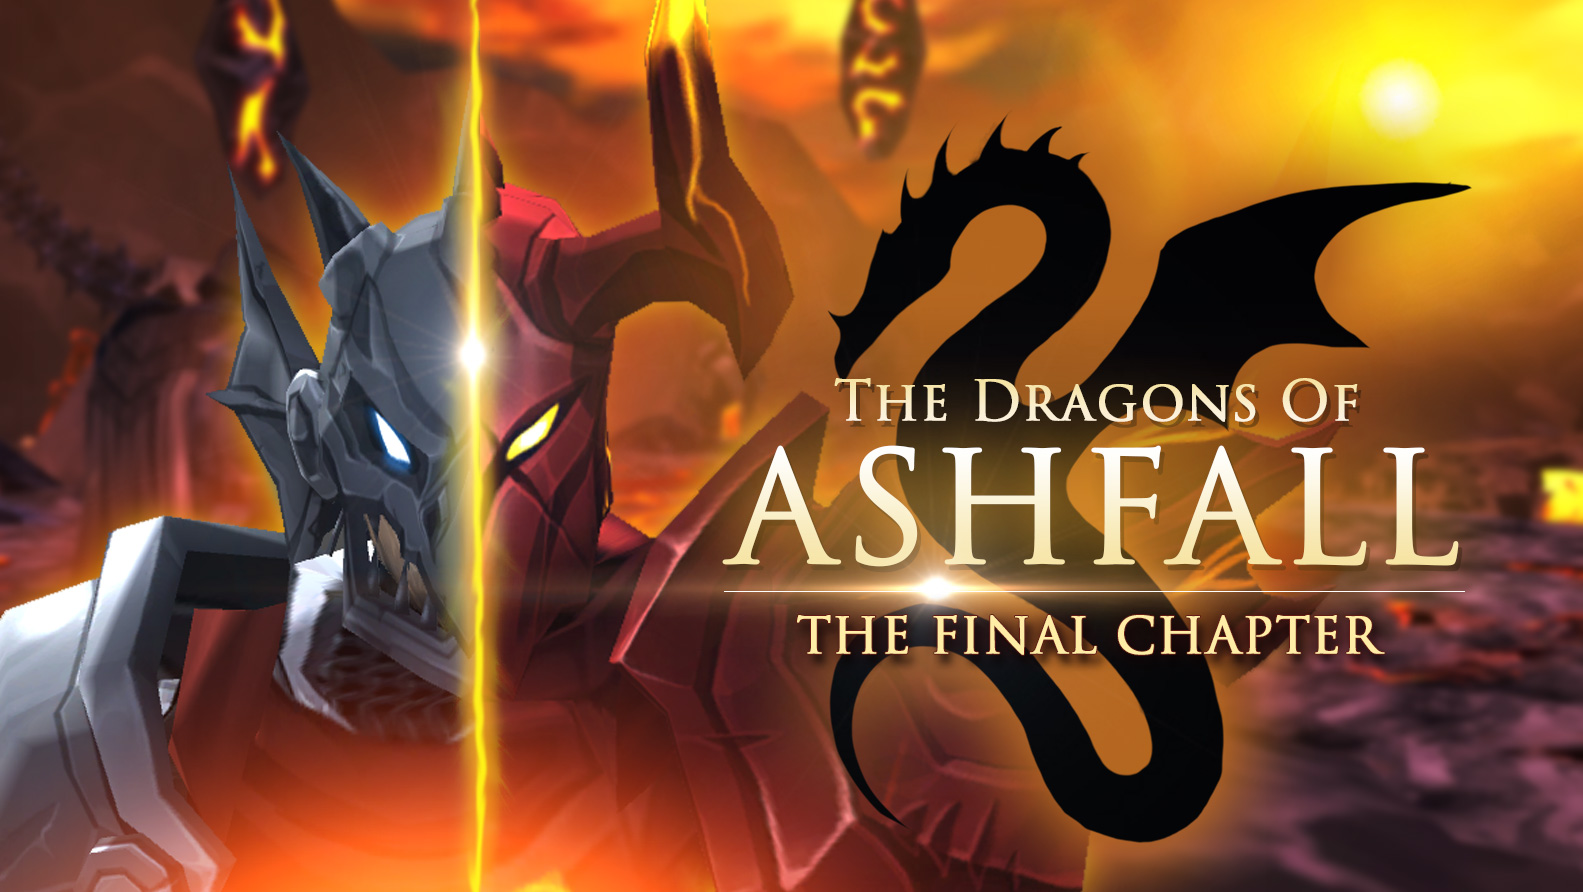 The Dragons of Ashfall: The Final Chapter